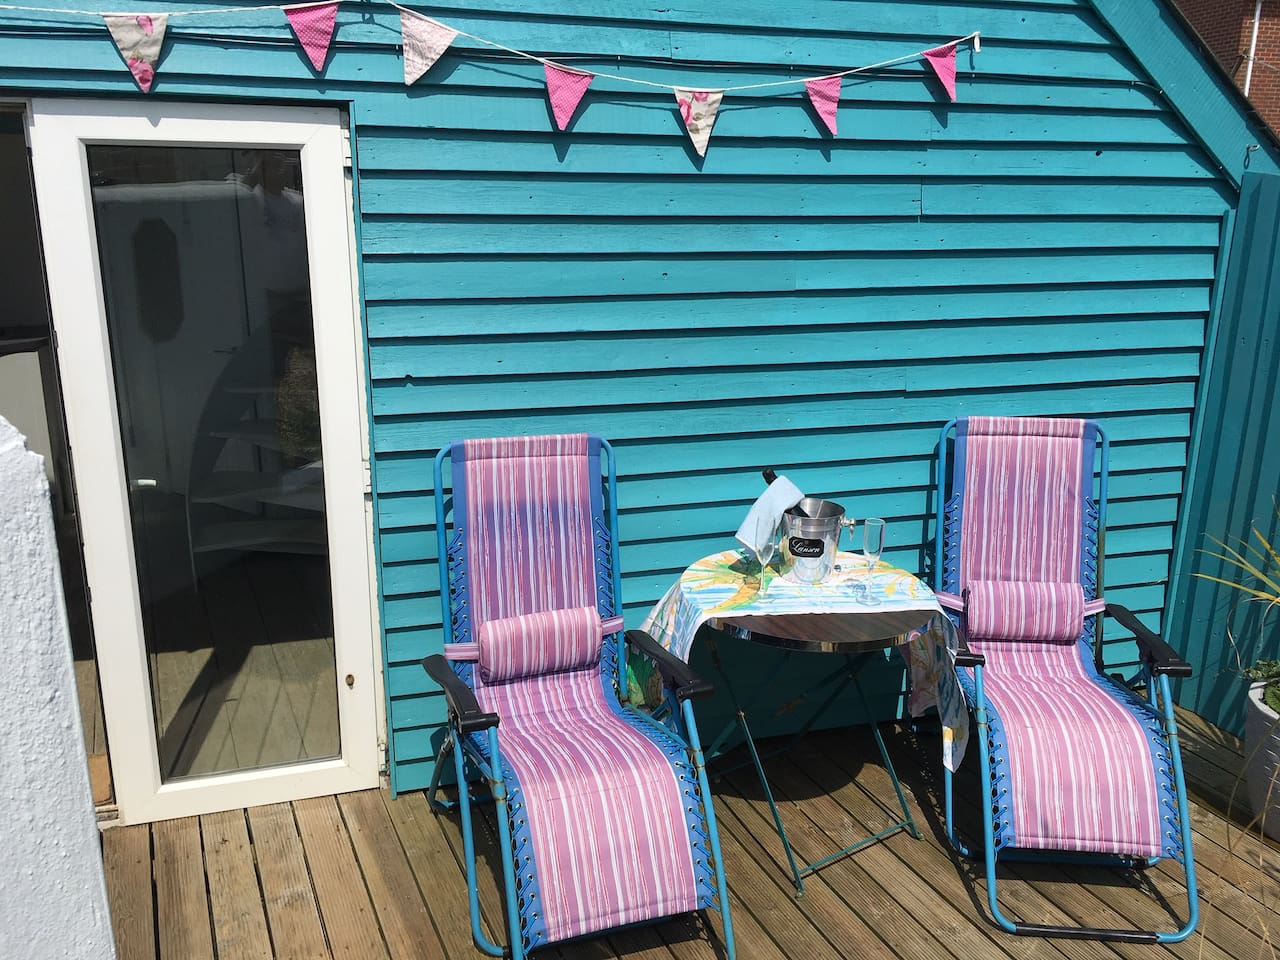 South facing Decking 40 yards from the beach - listen to the sea with some bubbly